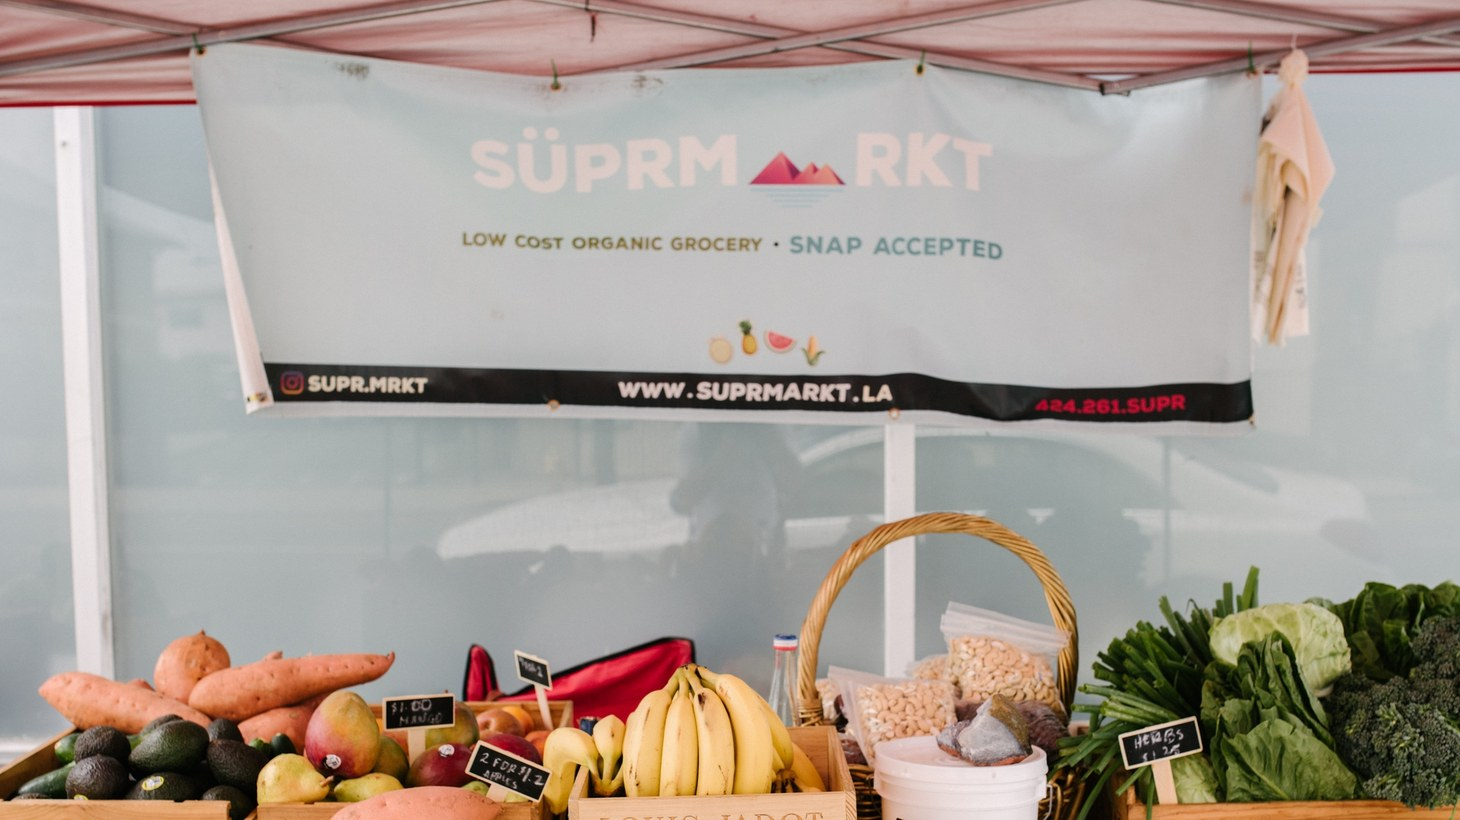 SÜPRMARKT is a low-cost organic grocery that's making healthy eating a reality for many LA residents.